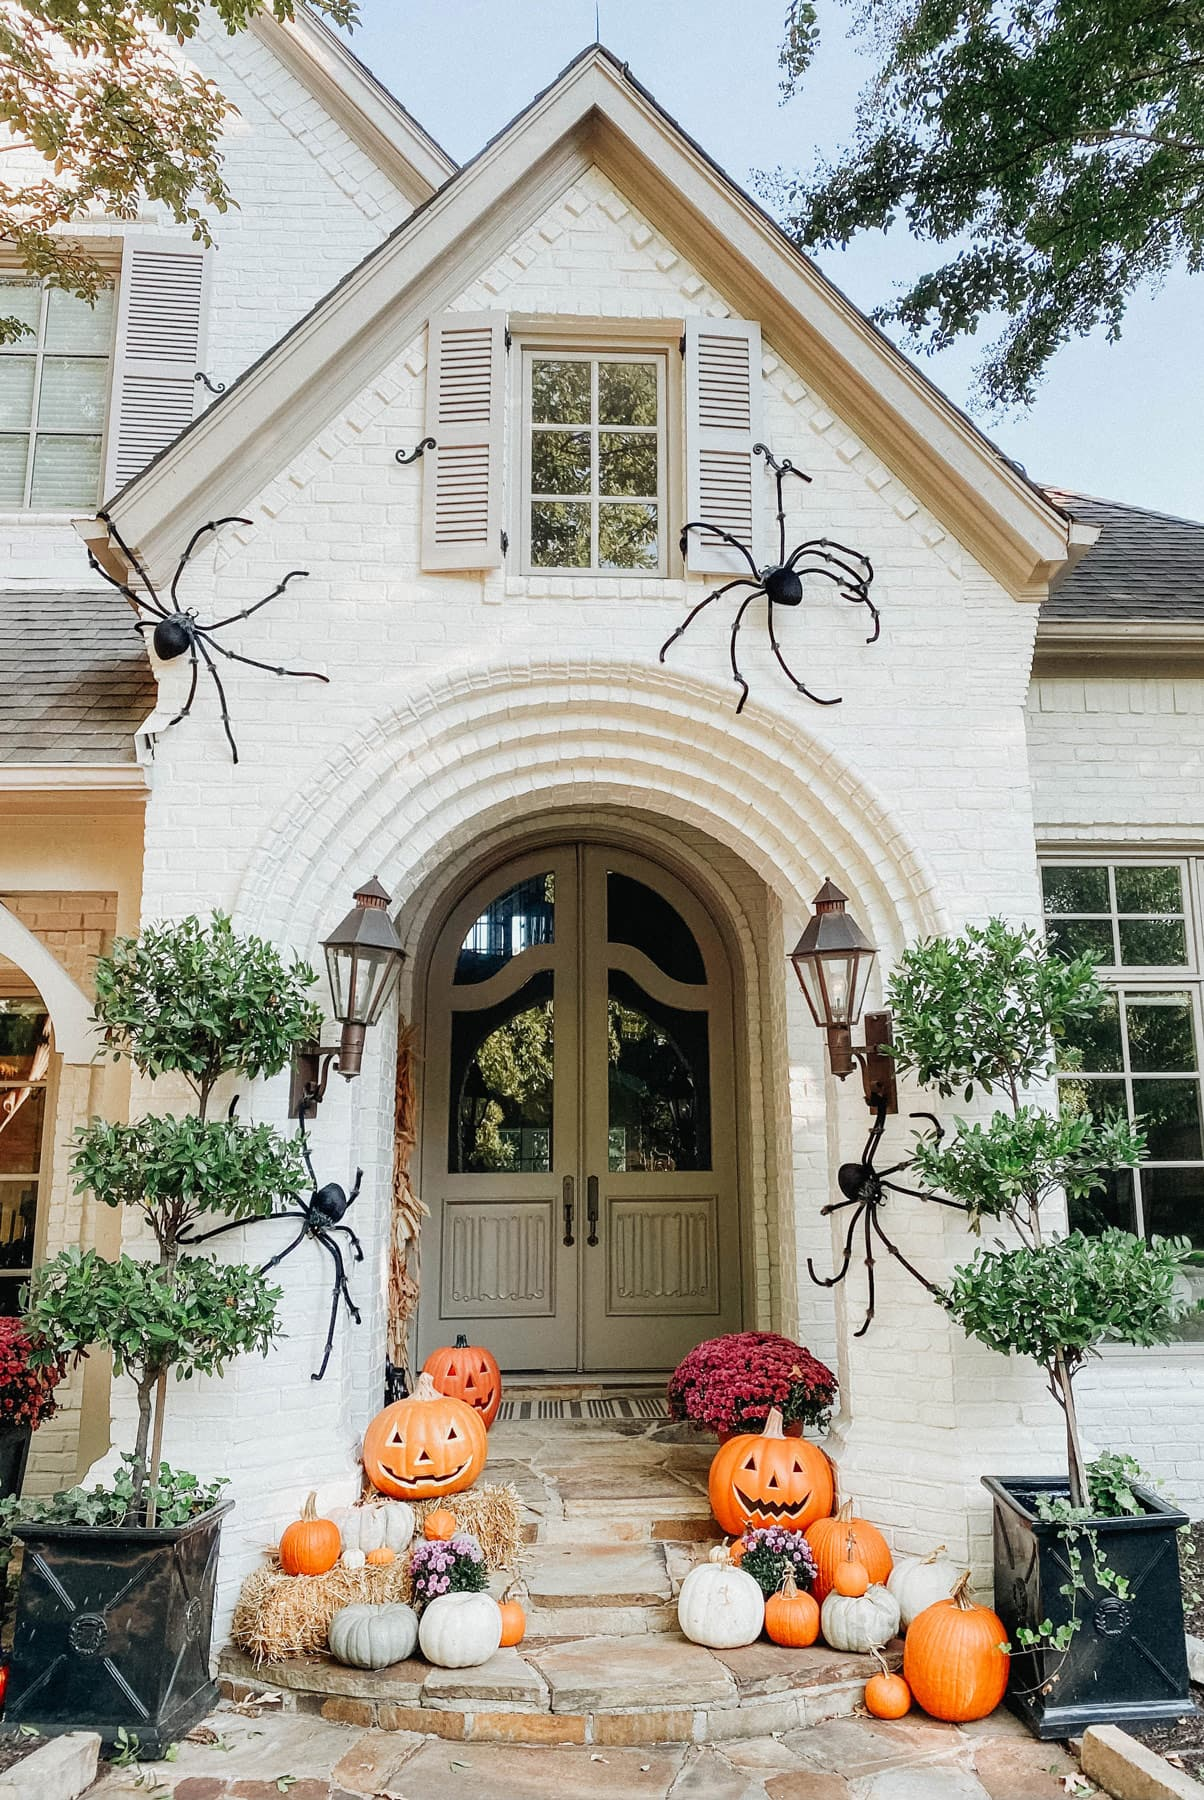 Pumpkins clustered up a walkway of a front porch with spiders.